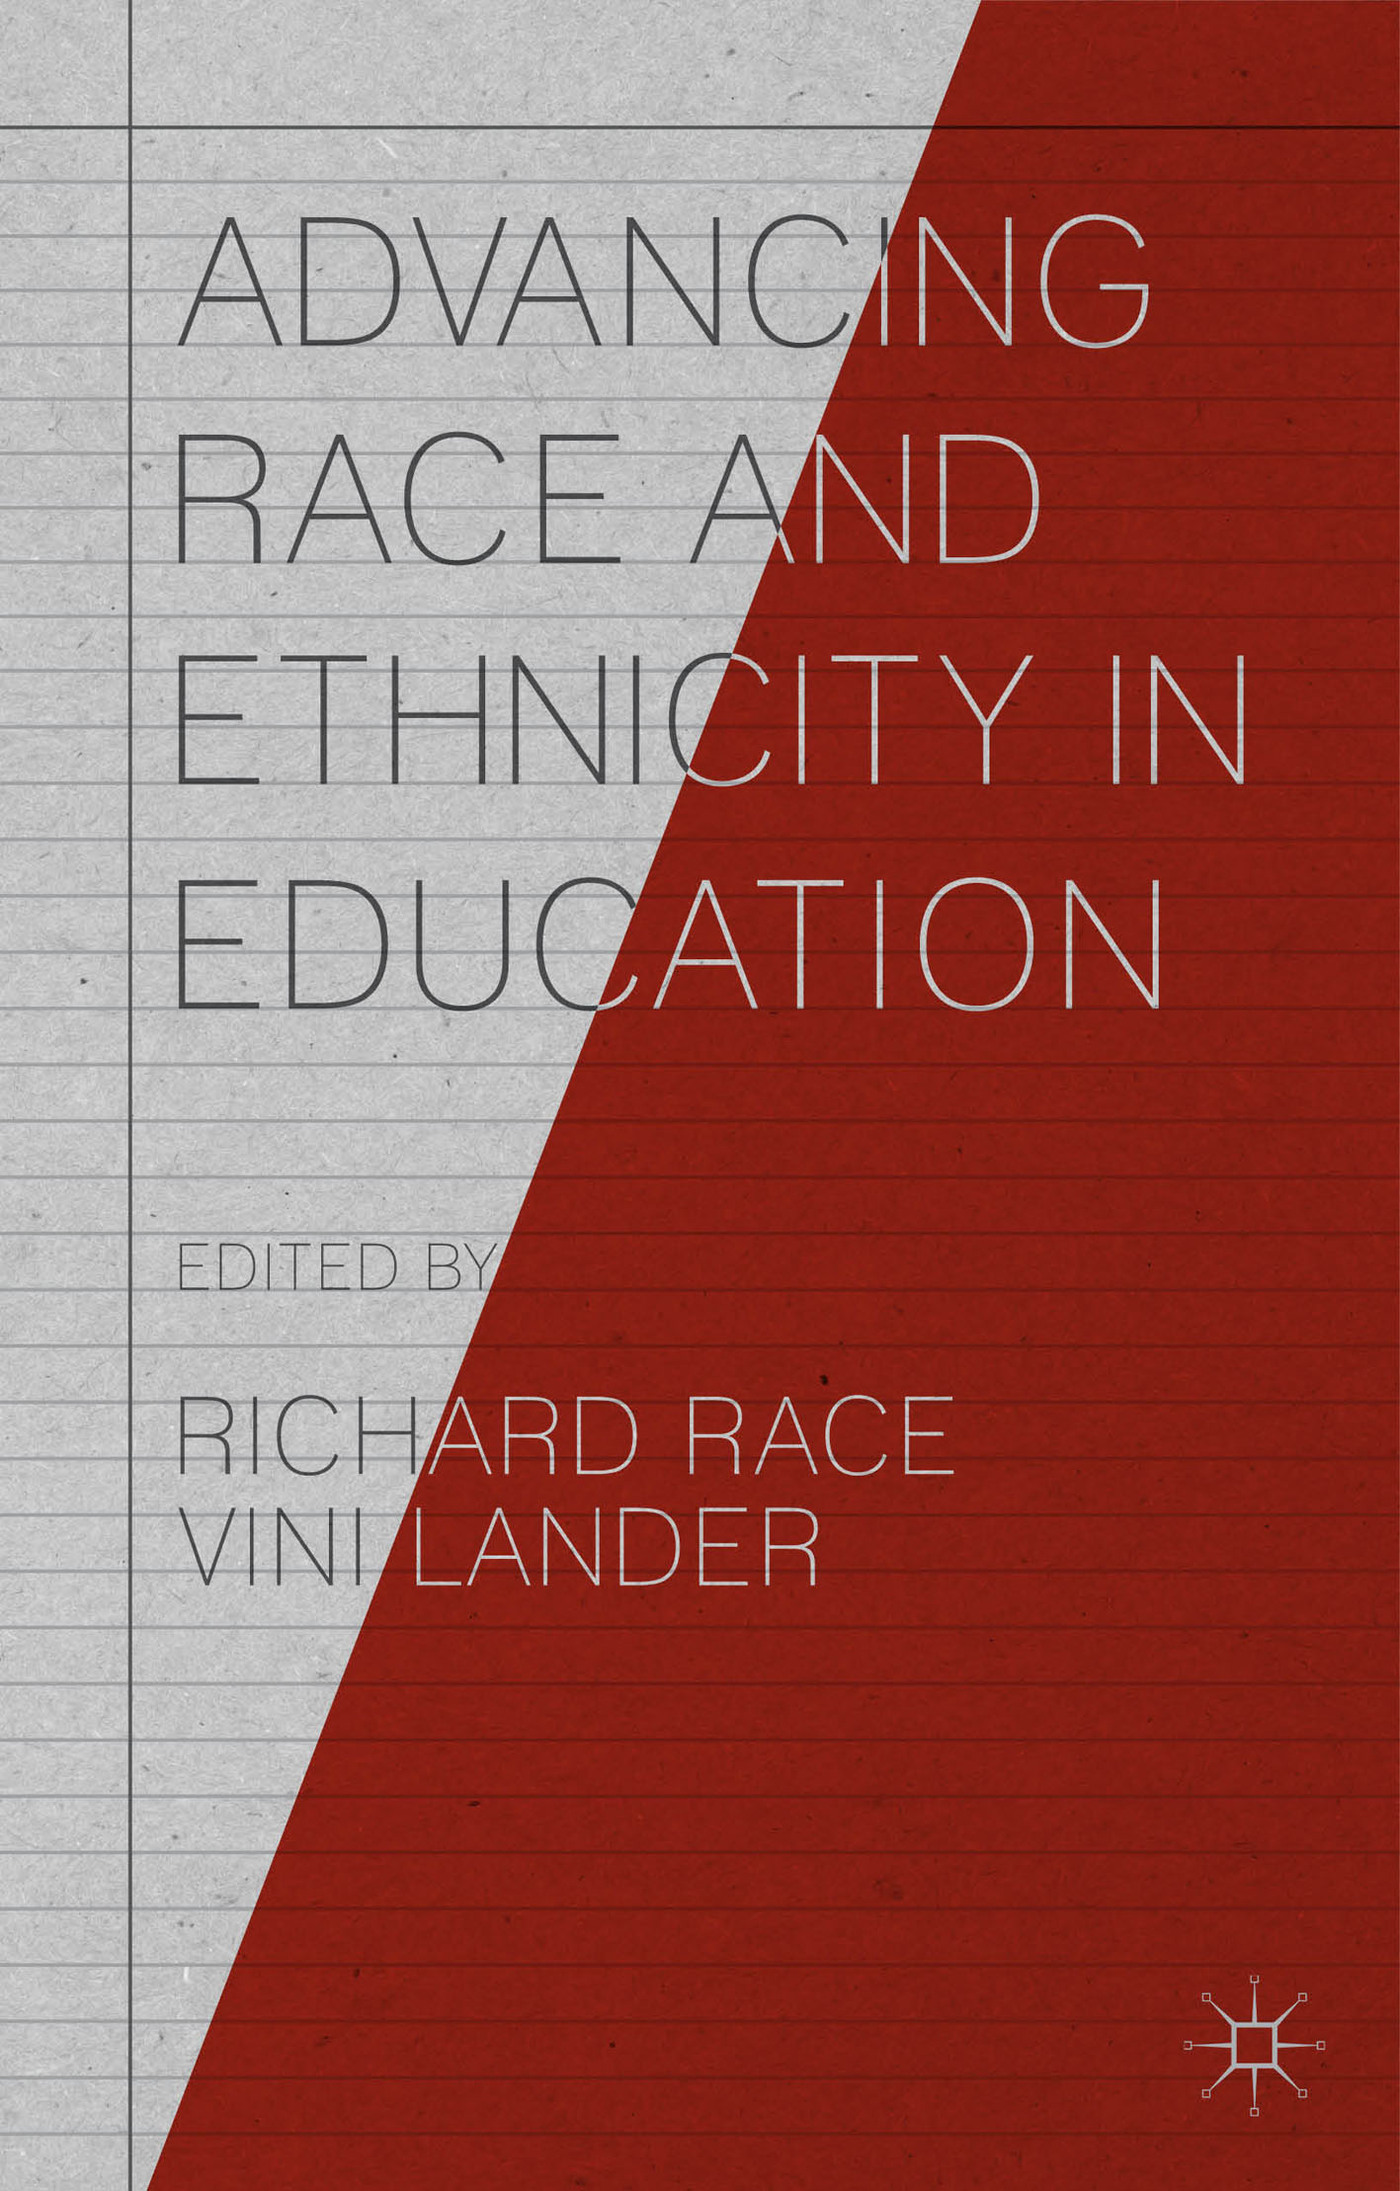 Advancing Race and Ethnicity in Education Richard Race